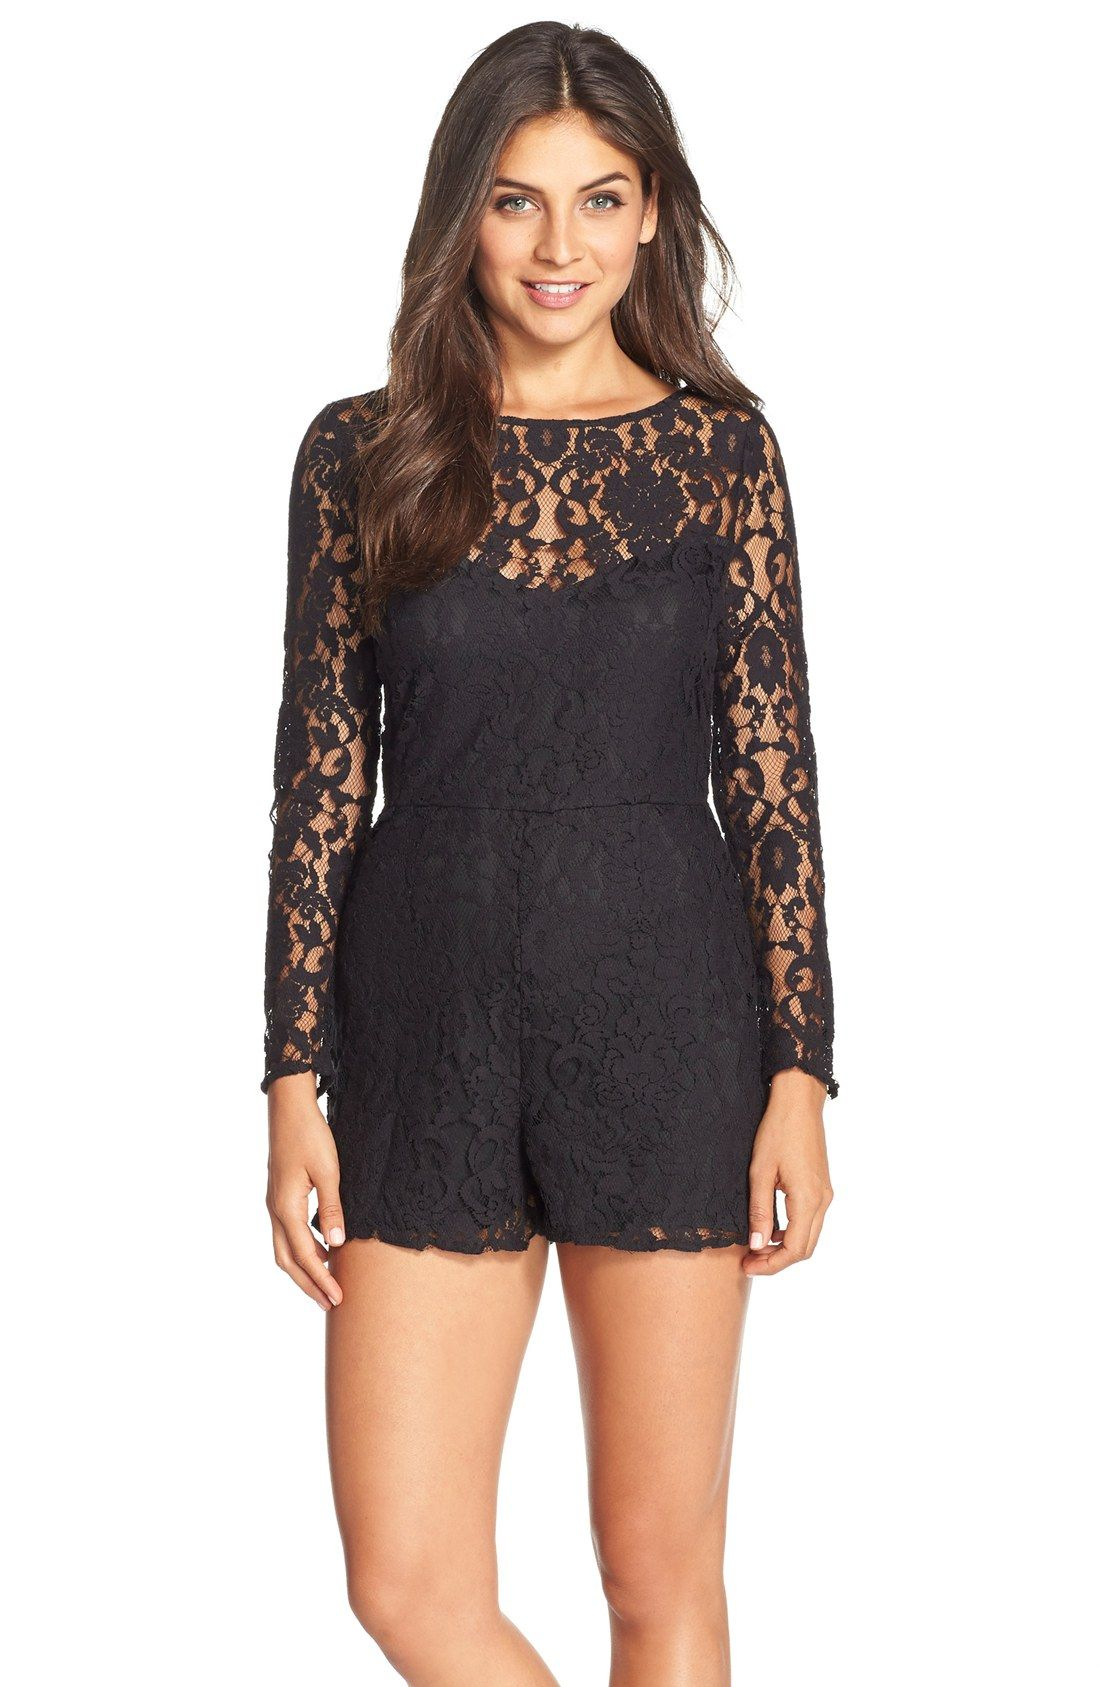 jumpsuits amp rompers shop is a global online fashion retailer offering thousands of styles across womenswear and menswear so that you stay ahead of the trends. SHOP OUR HUGE RANGE OF WOMEN'S FASHION ITEMS INCLUDING DRESSES, TOPS, .